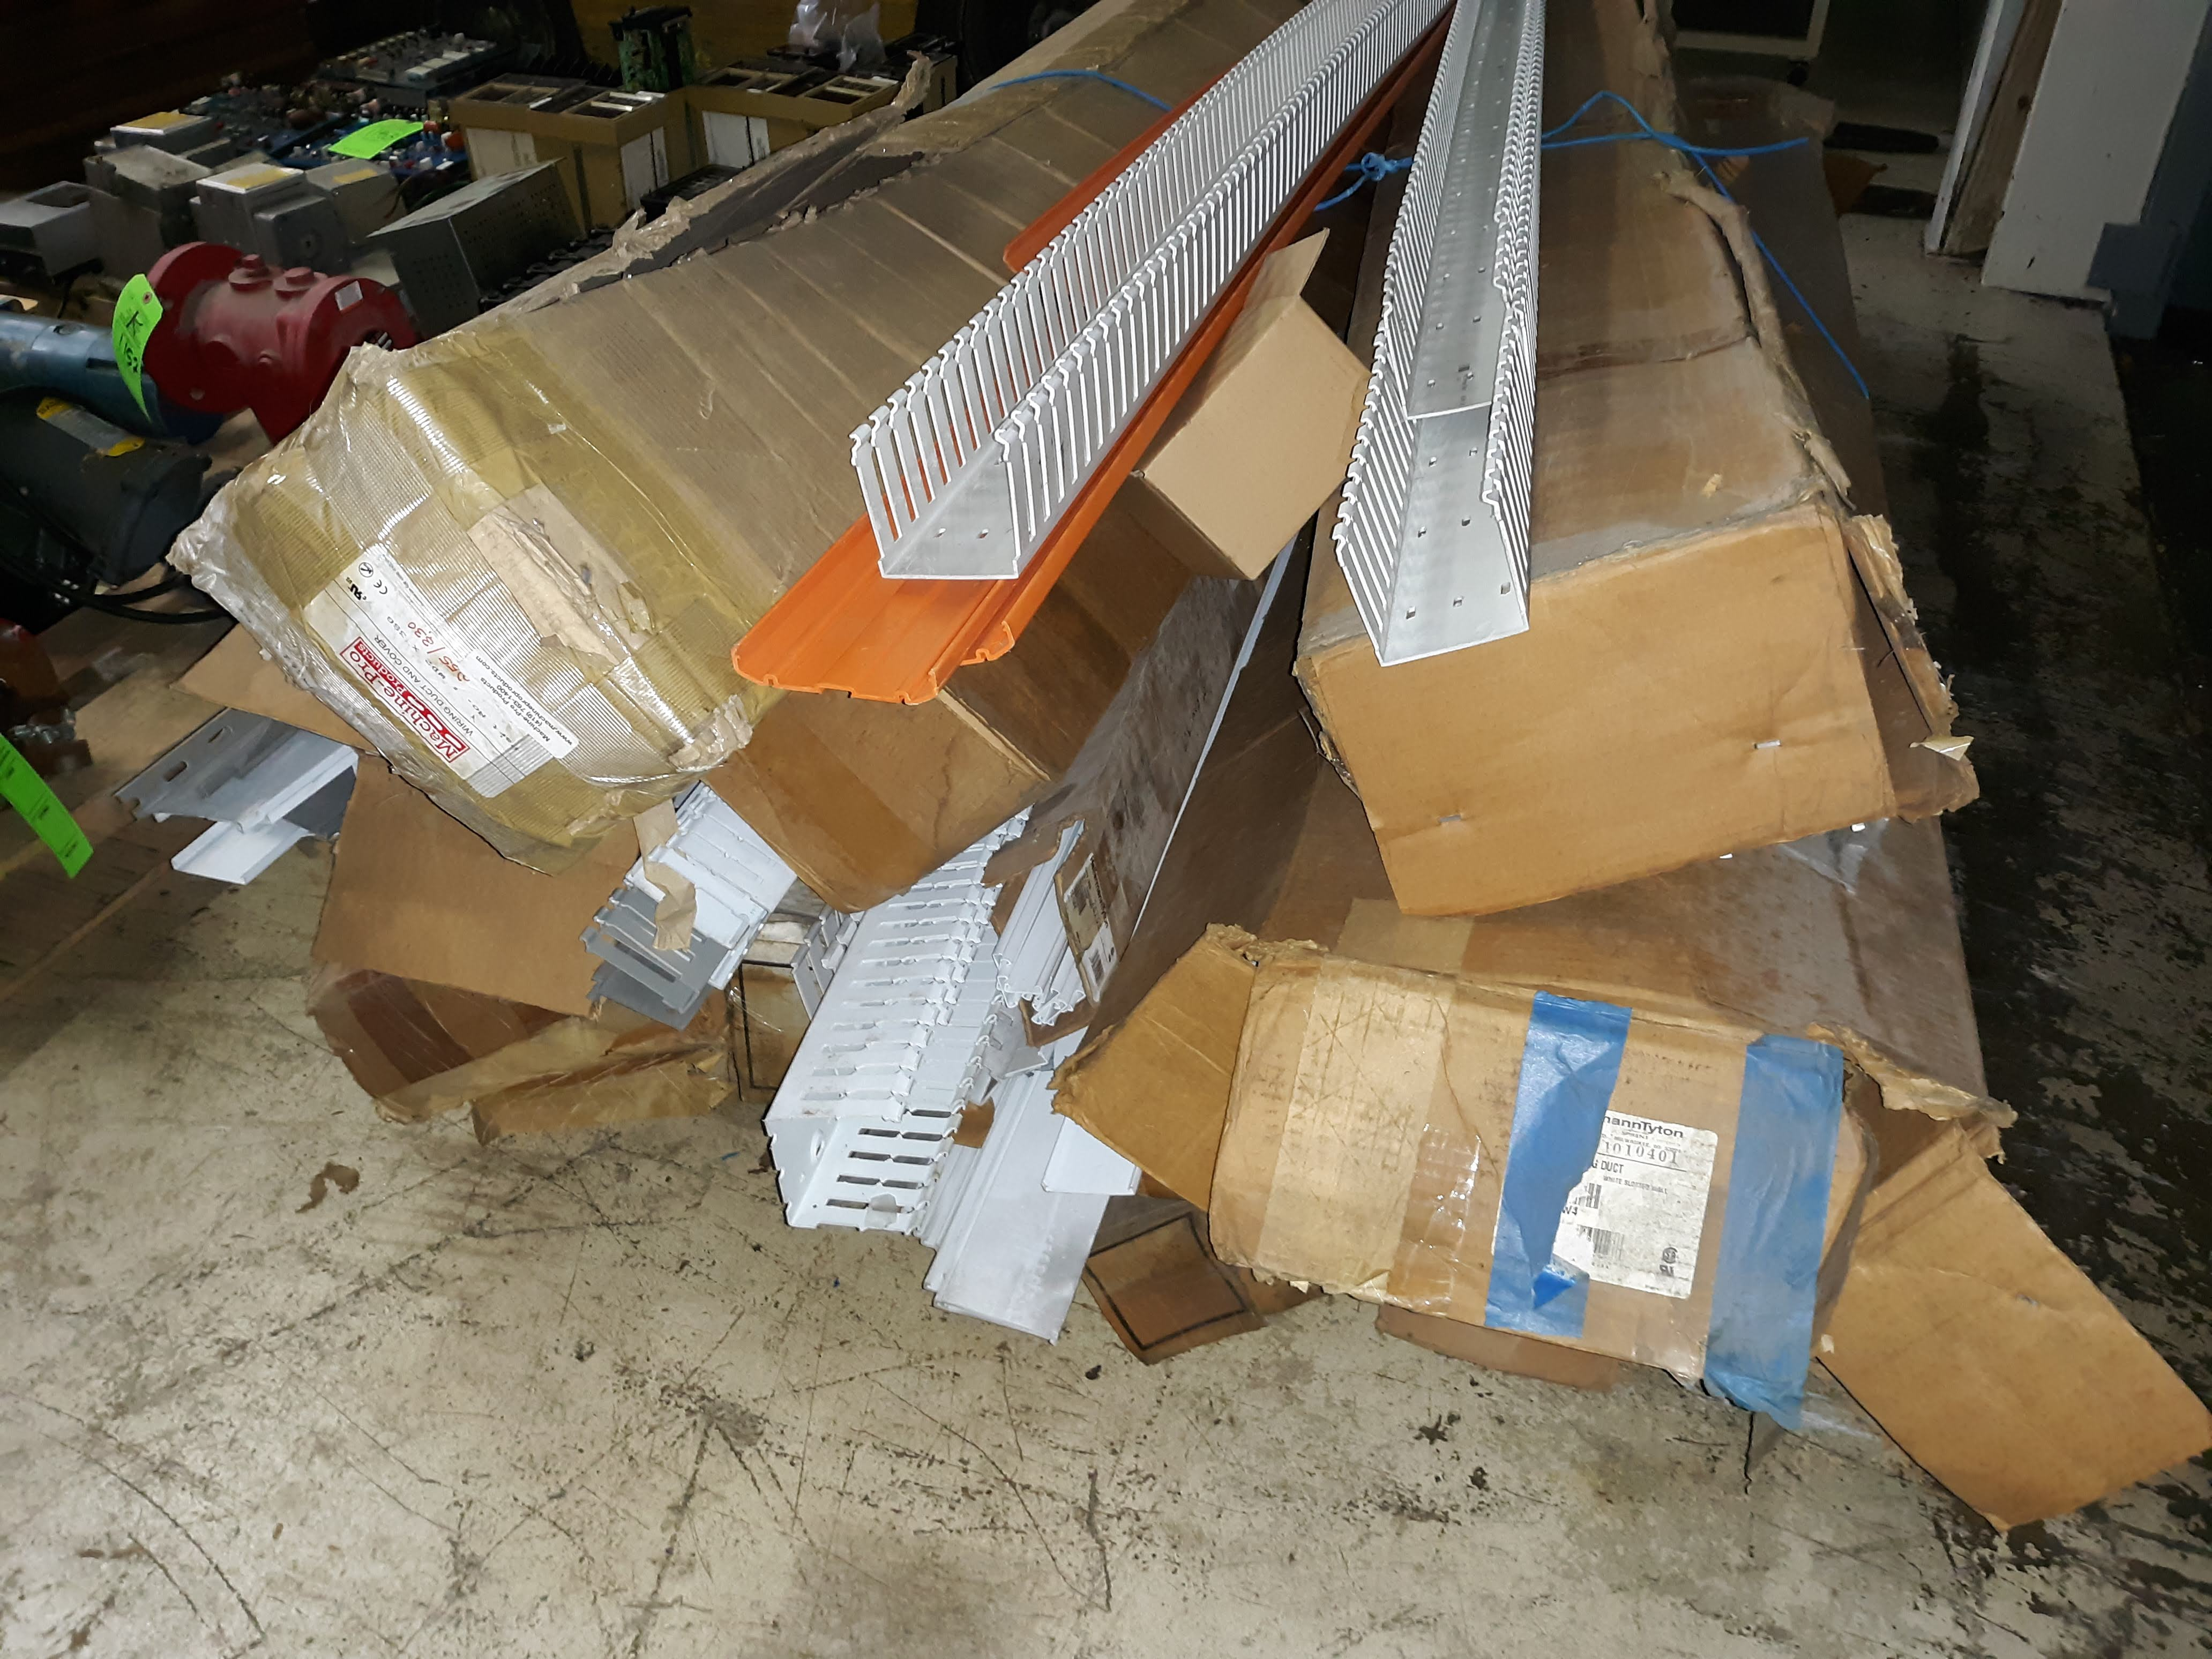 Lot 1151 - SKID OF DIFFERENT TYPES OF PLASTIC WIRING DUCTS (LOCATED AT: 432 COUNCIL DRIVE, FORT WAYNE, IN